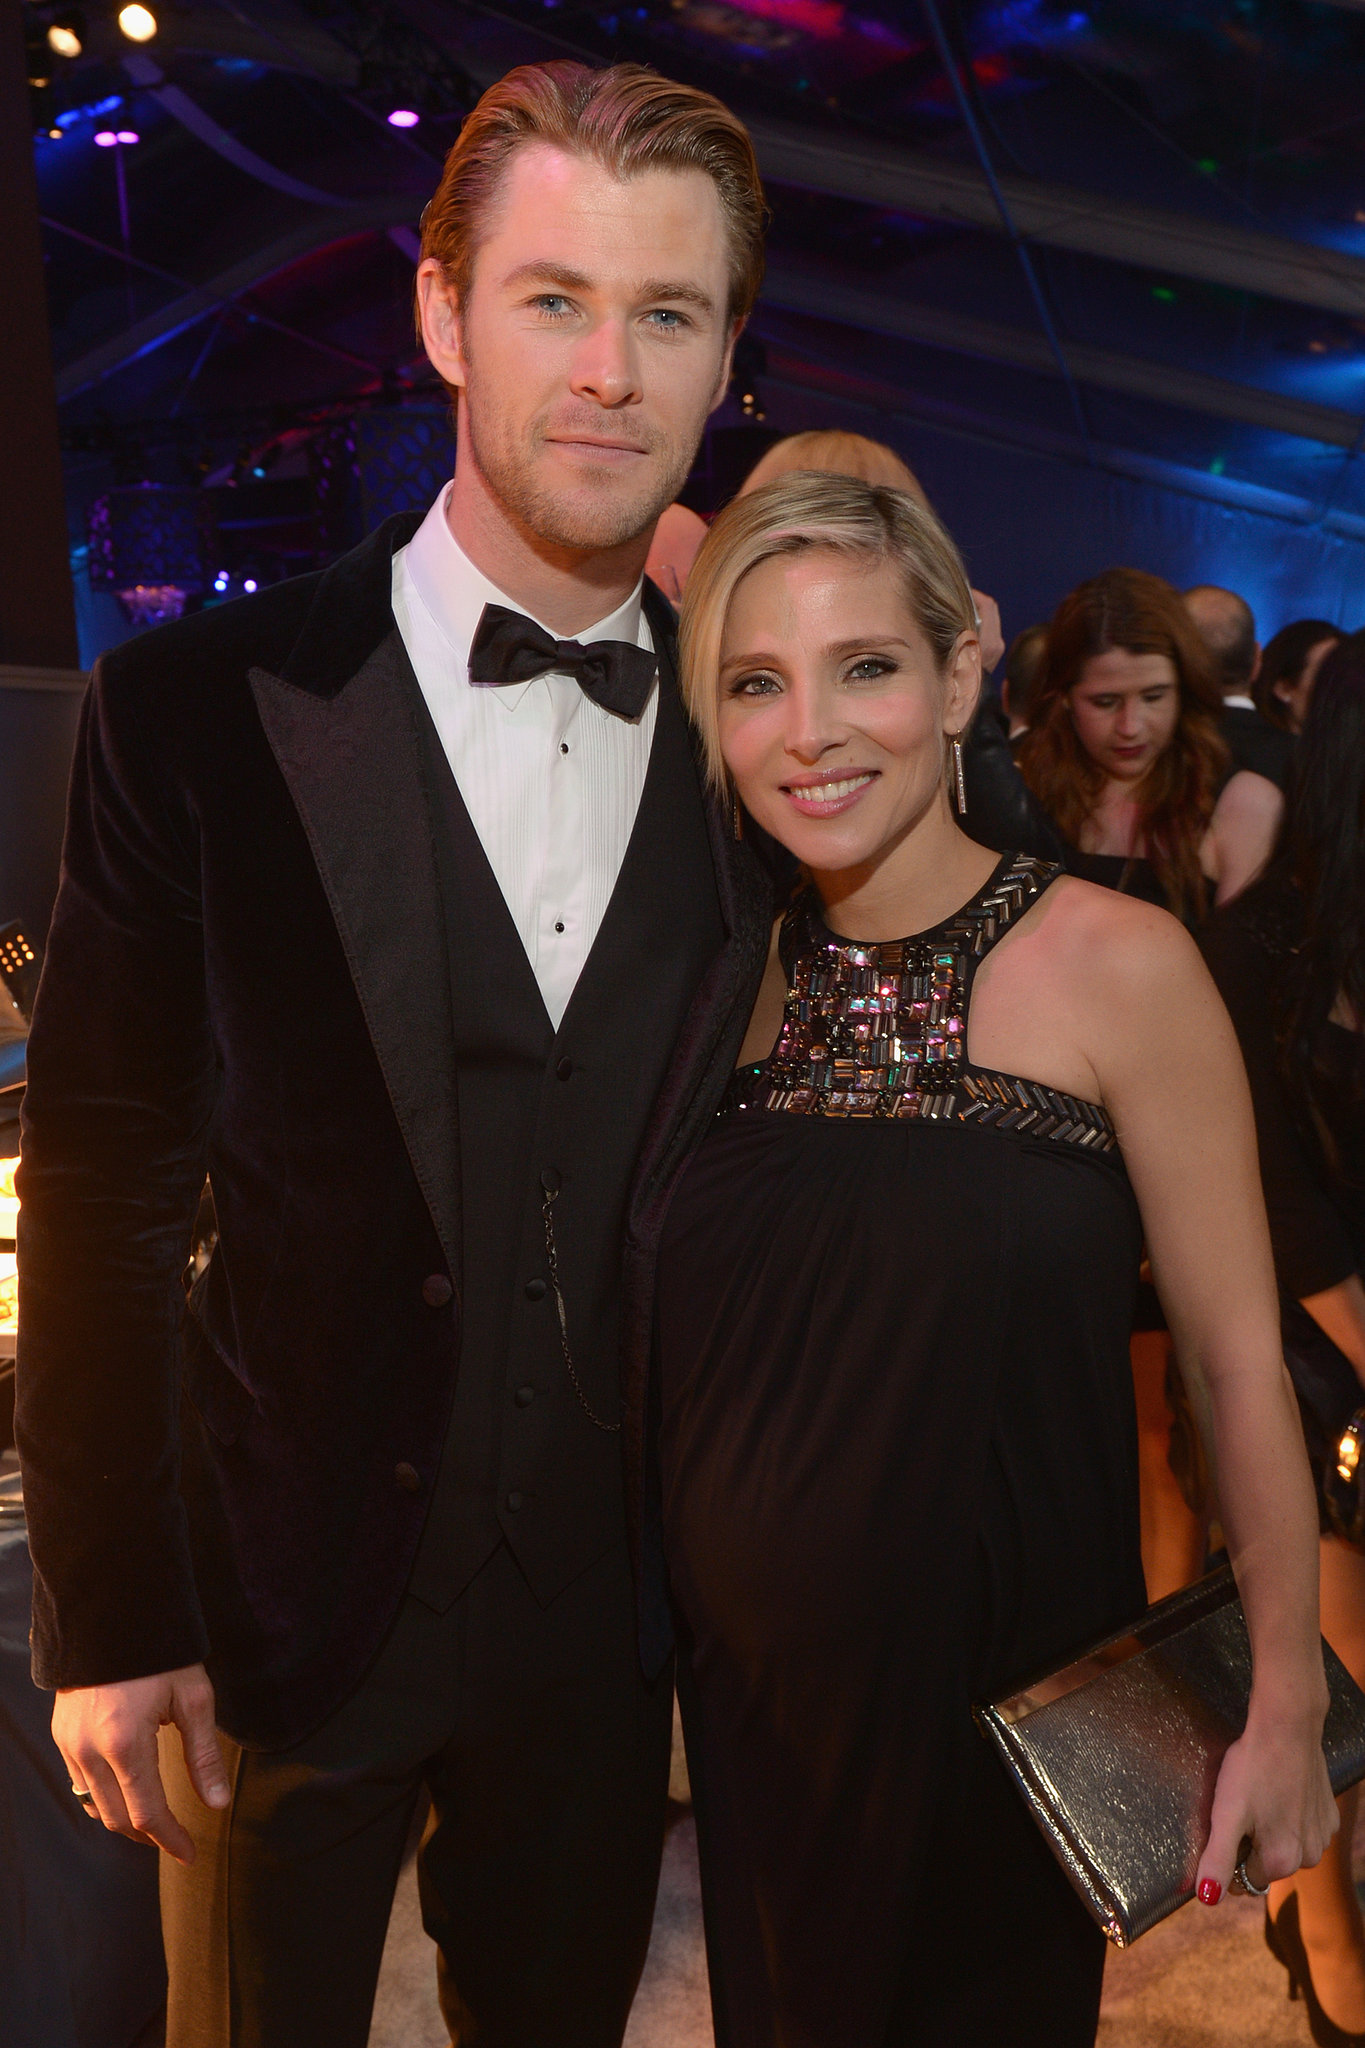 Chris Hemsworth and Elsa Pataky partied together.